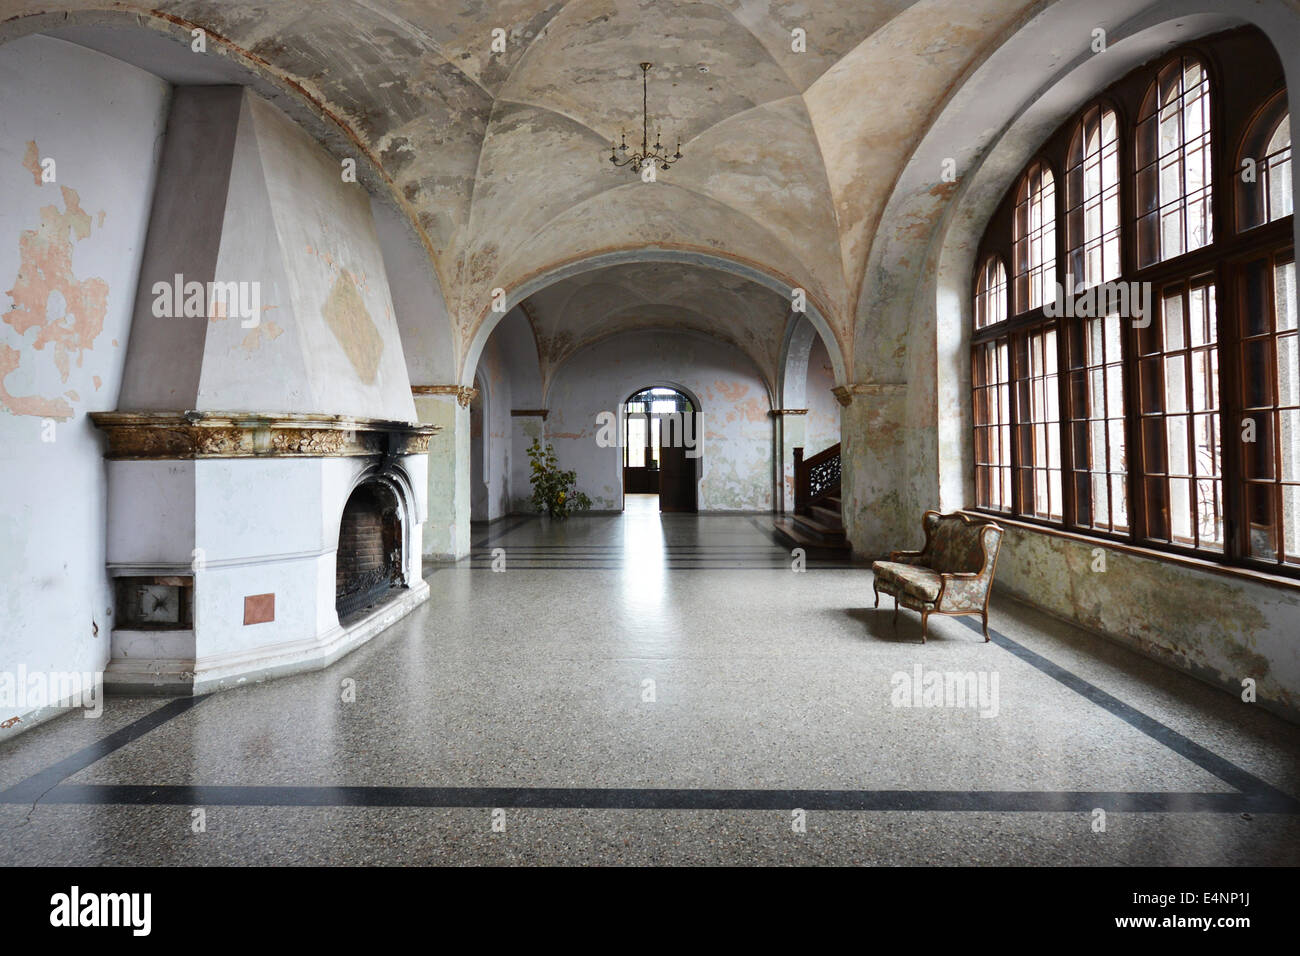 entrance hall in old castle - Stock Image